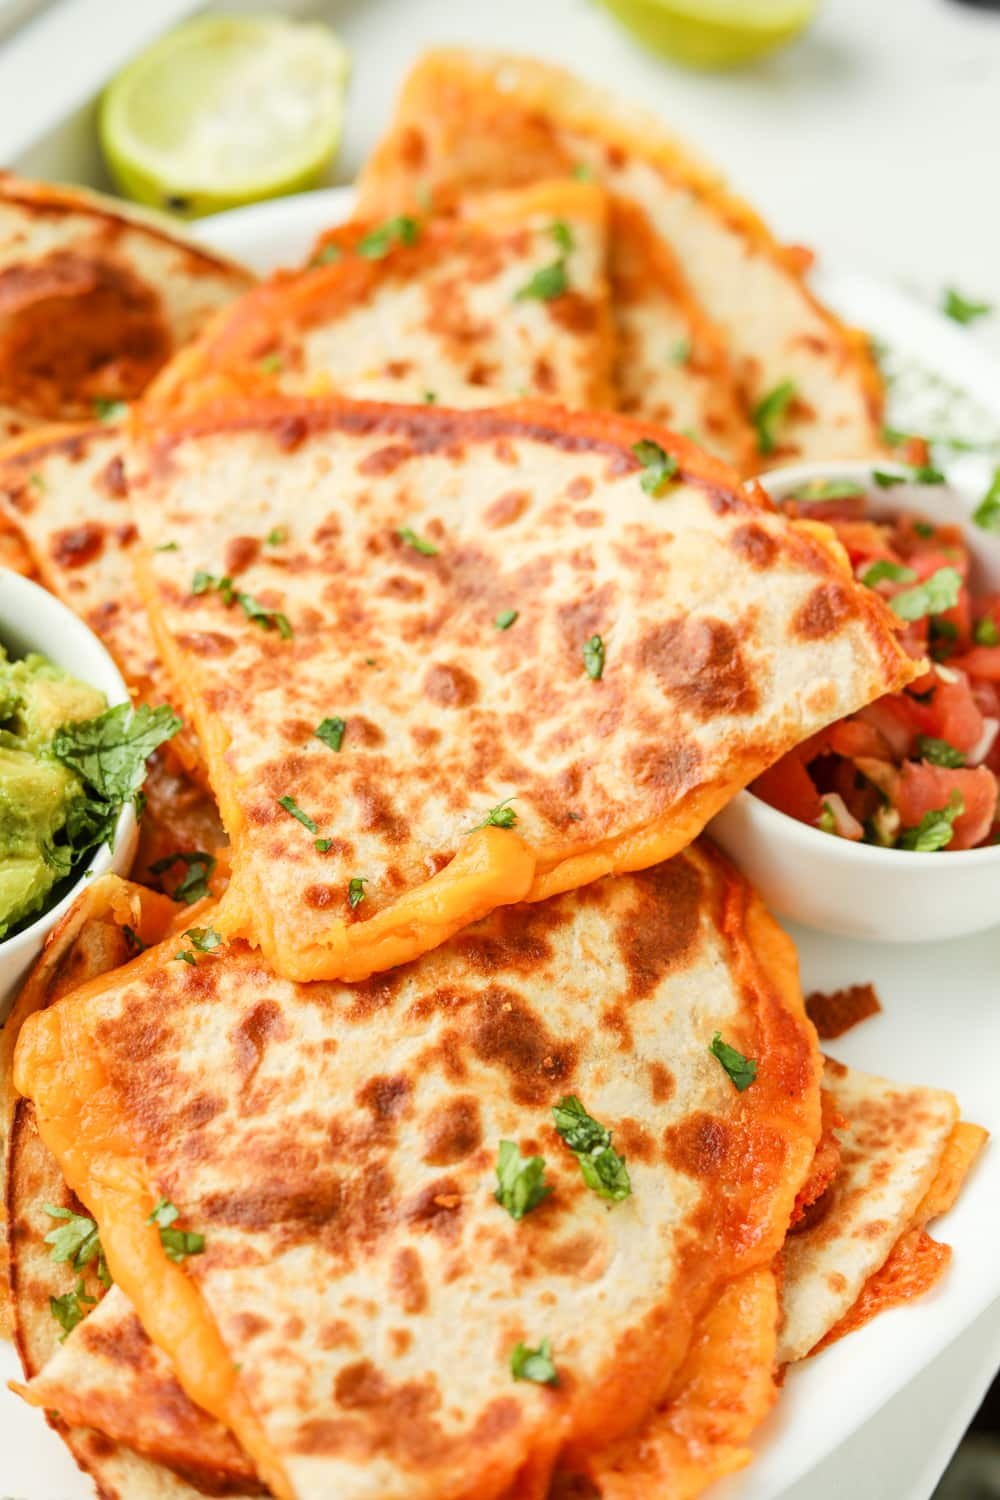 Quesadillas stuffed with cheese on a white plate.